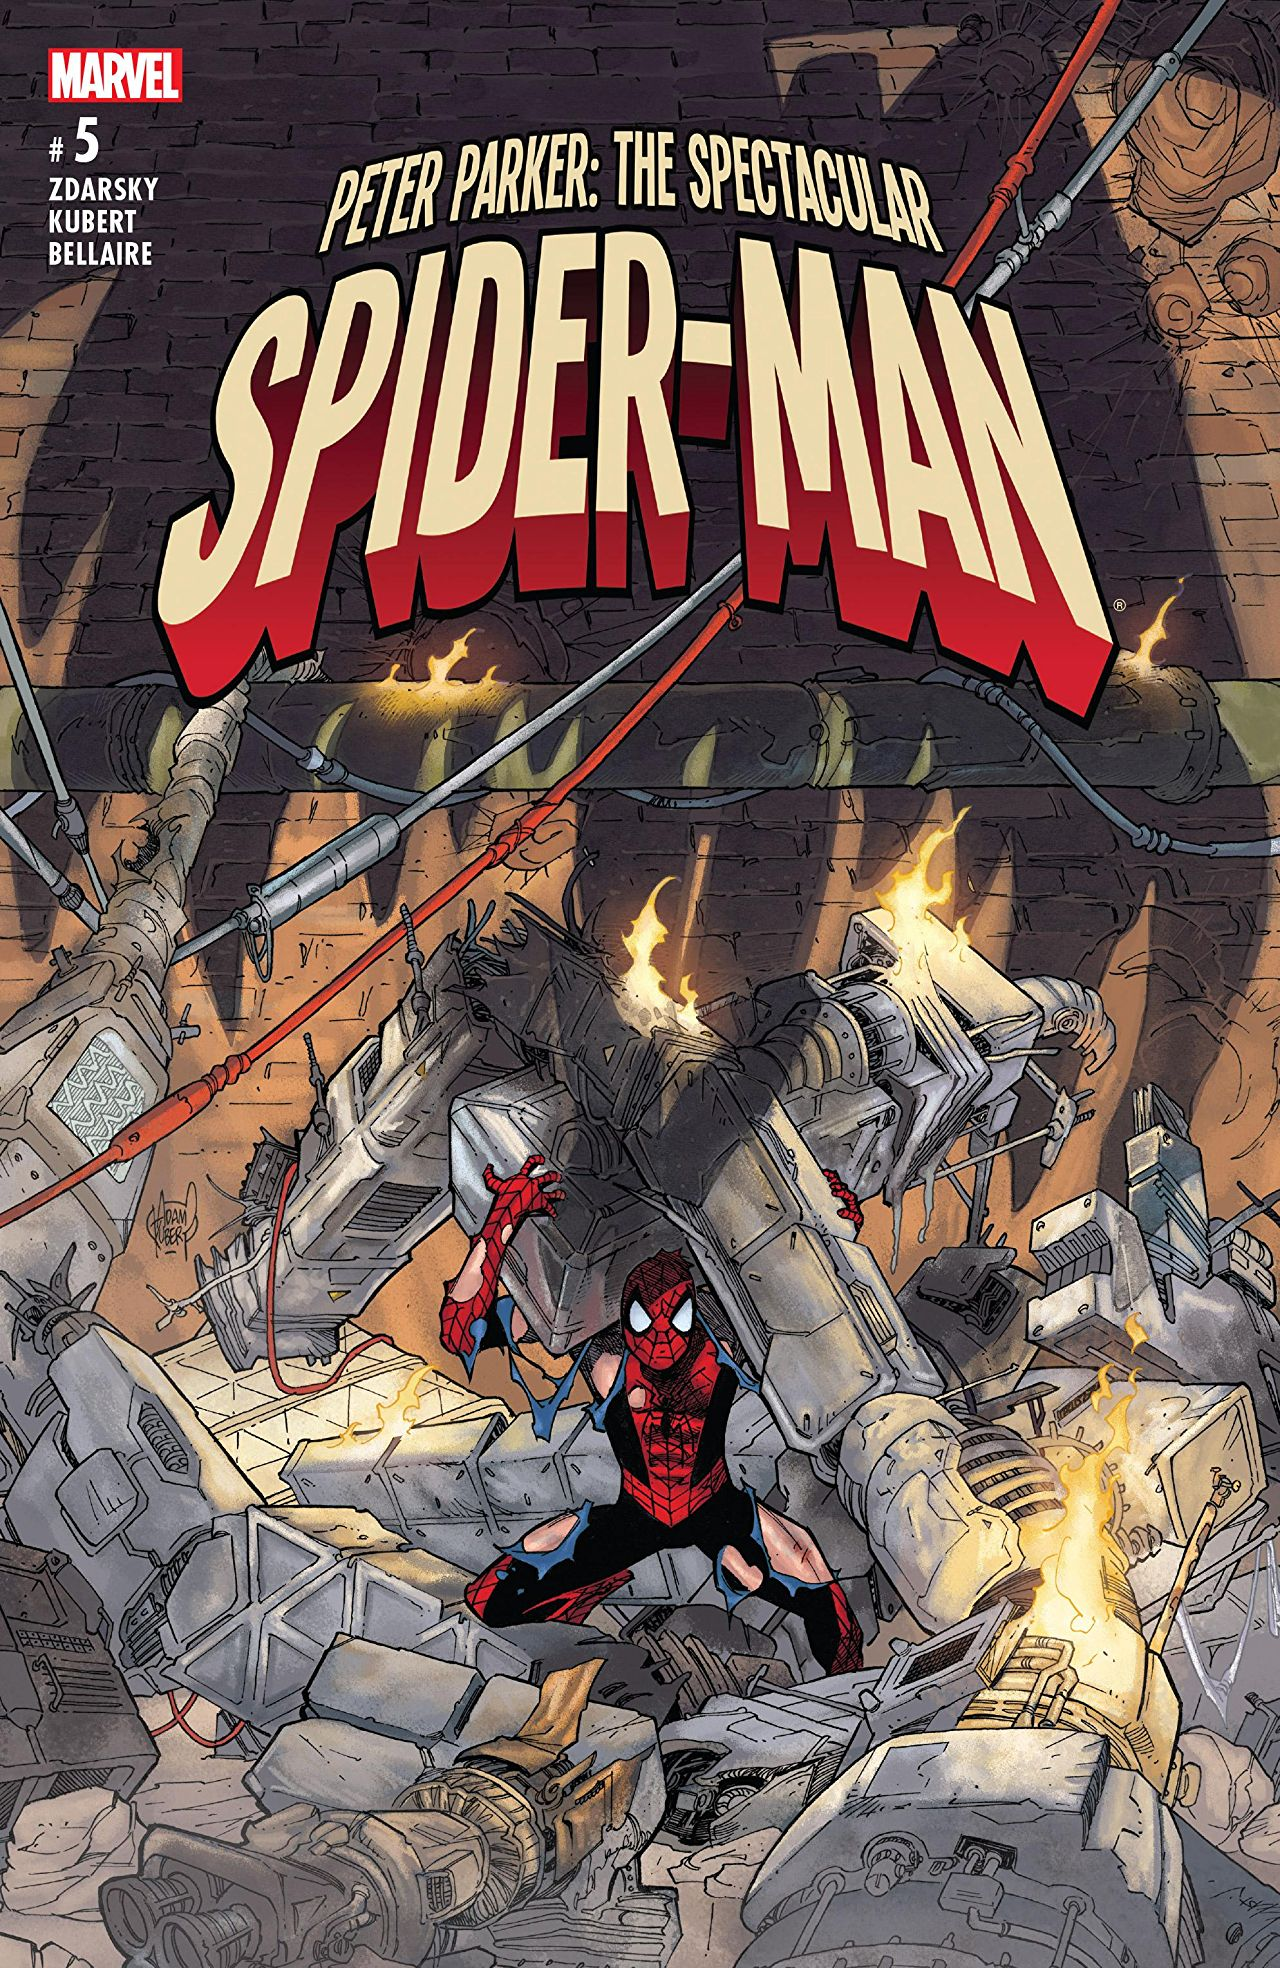 Peter Parker: The Spectacular Spider-Man Vol 1 5